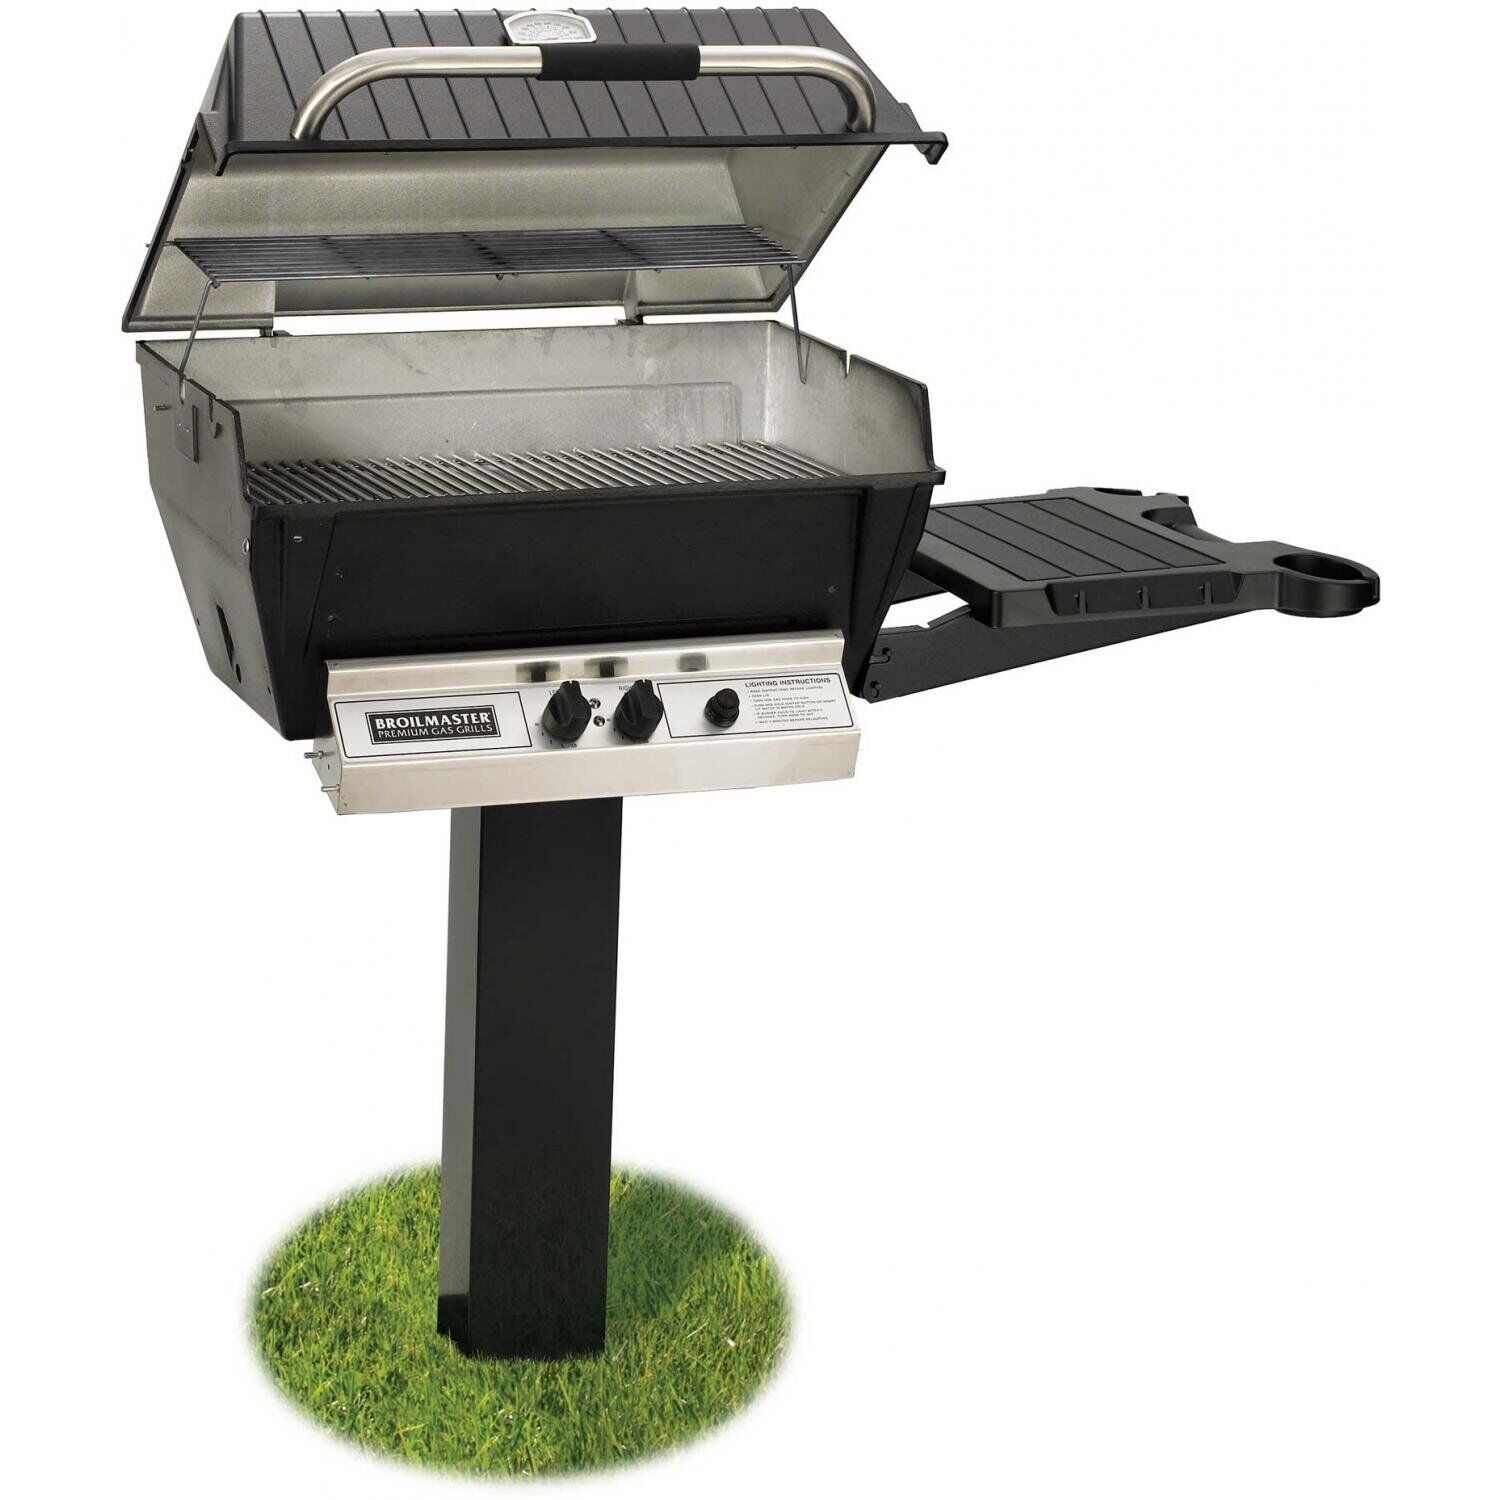 BROILMASTER DELUXE GAS GRILL PKG 2 W/INGROUND POST & SIDE SH